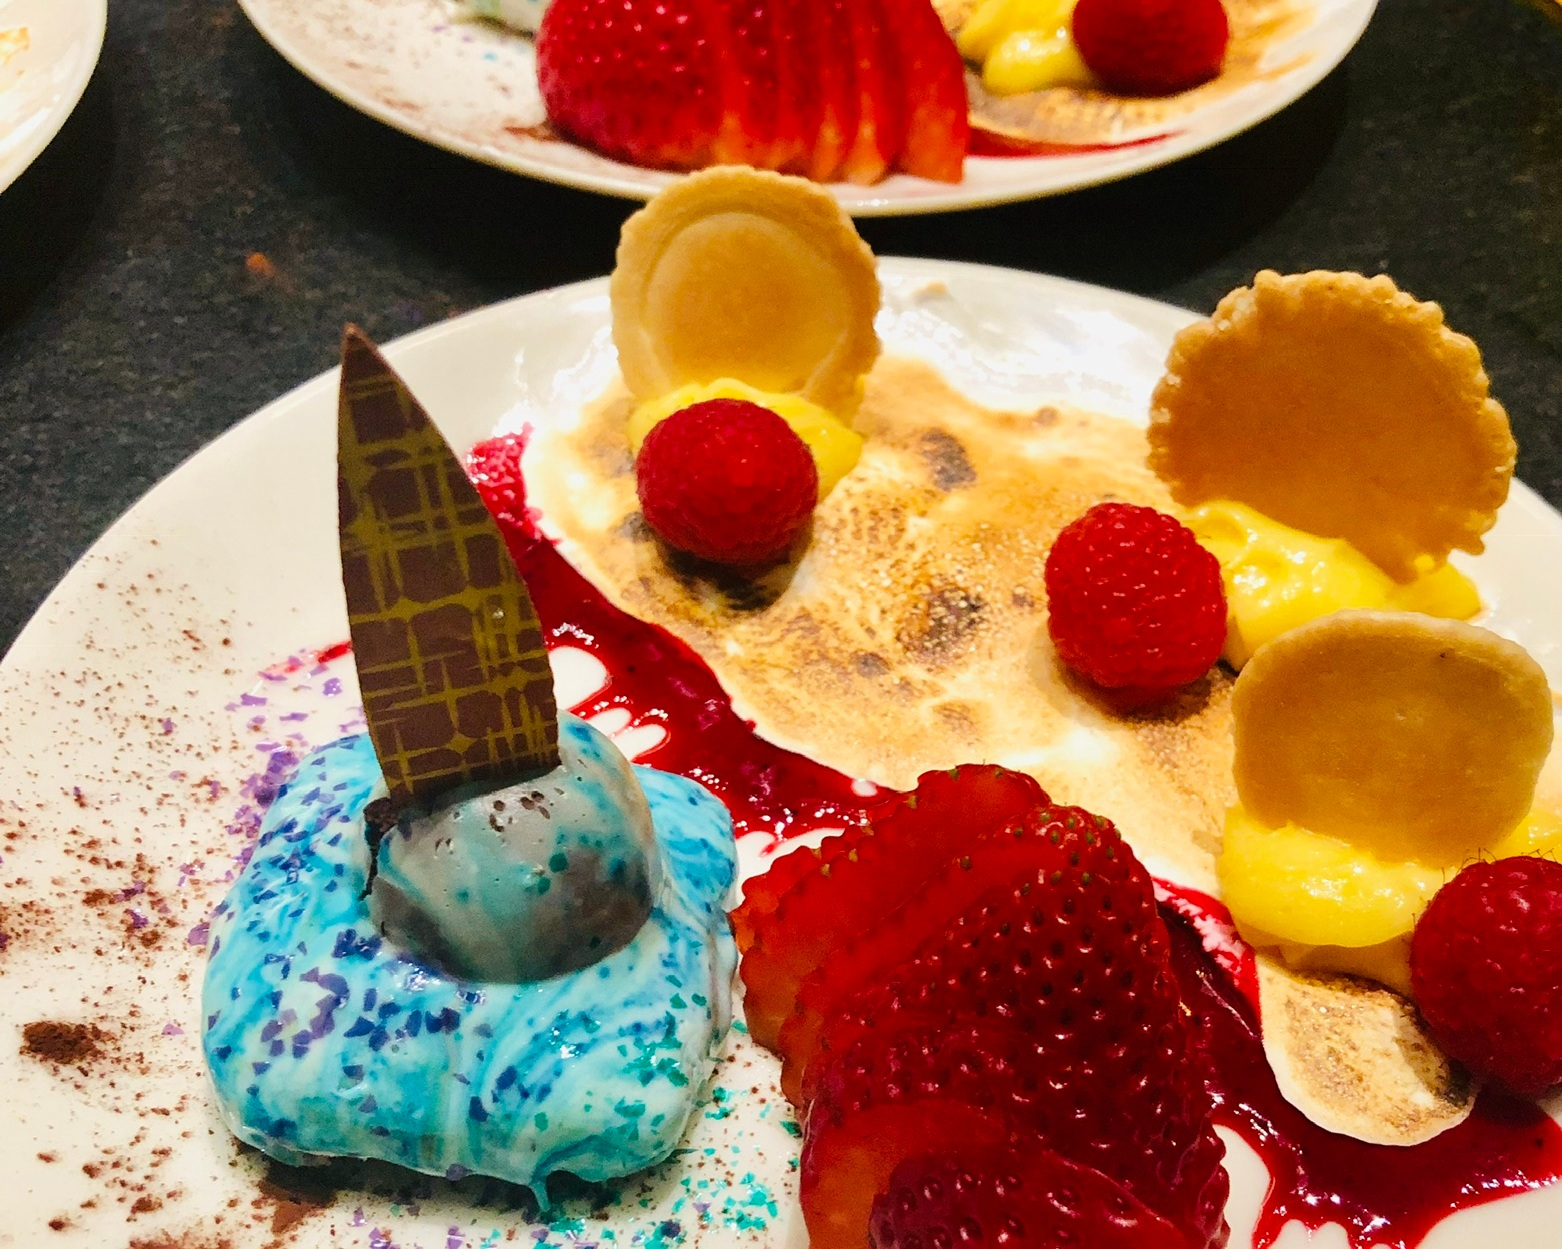 Party on a Plate: Reversed Lemon Meringue Pie/Chocolate Mousse Brownie/Raspberry Coulis